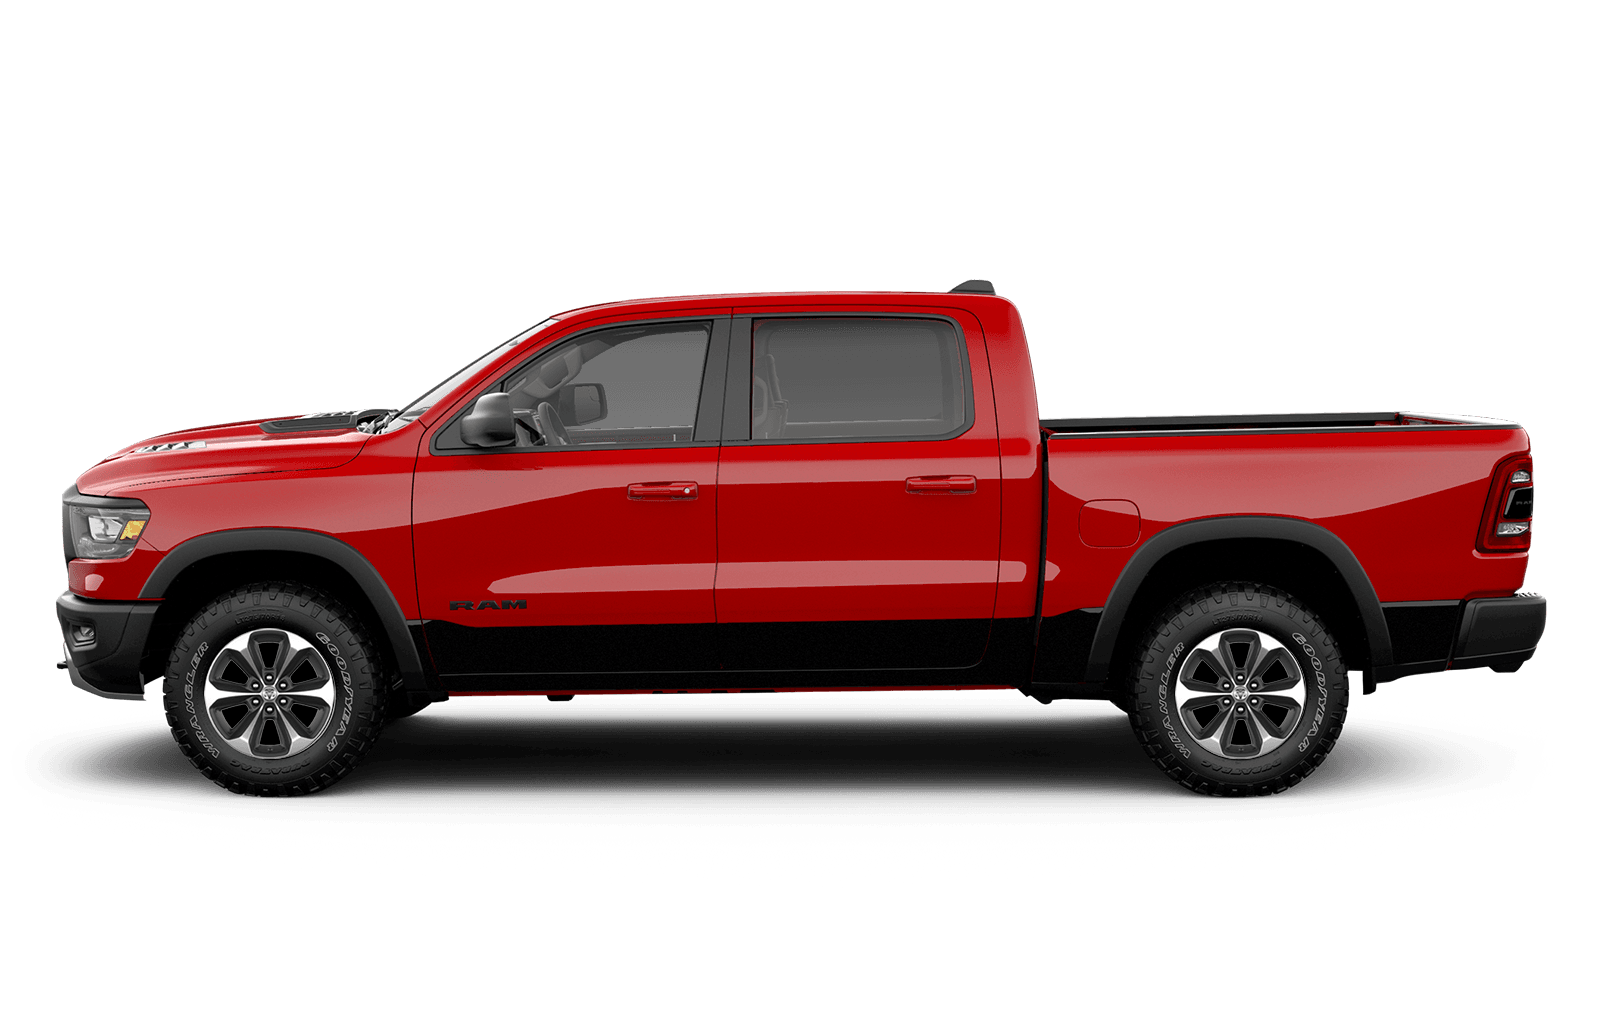 2019 Ram 1500 20inch aluminum with inserts wheels standard on Laramie Limited